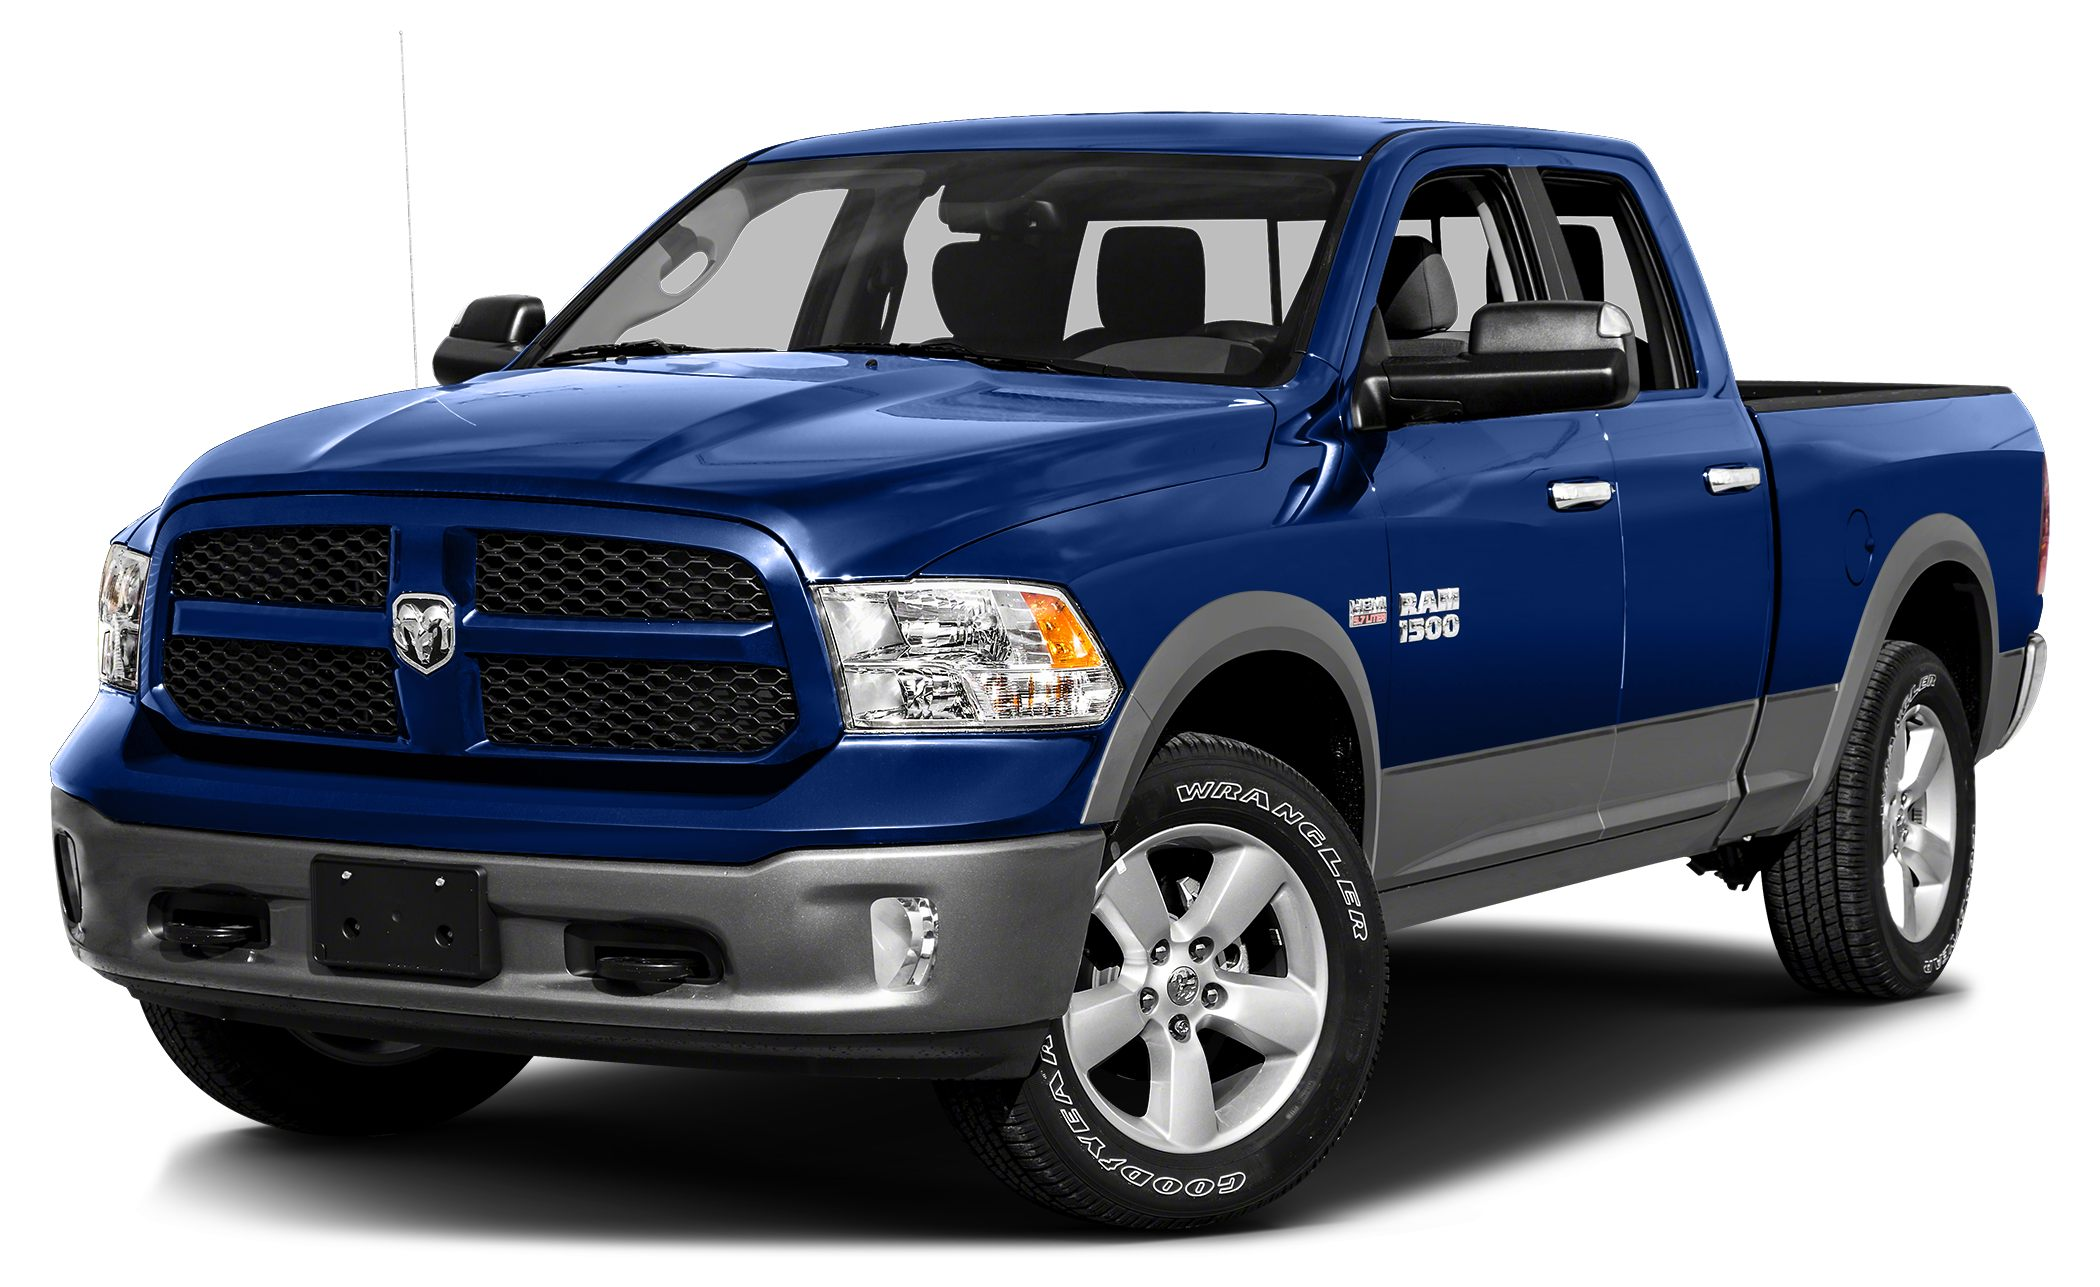 2015 RAM 1500 SLT Excellent Condition ONLY 19300 Miles Big Horn trim Blue Streak Pearlcoat ext